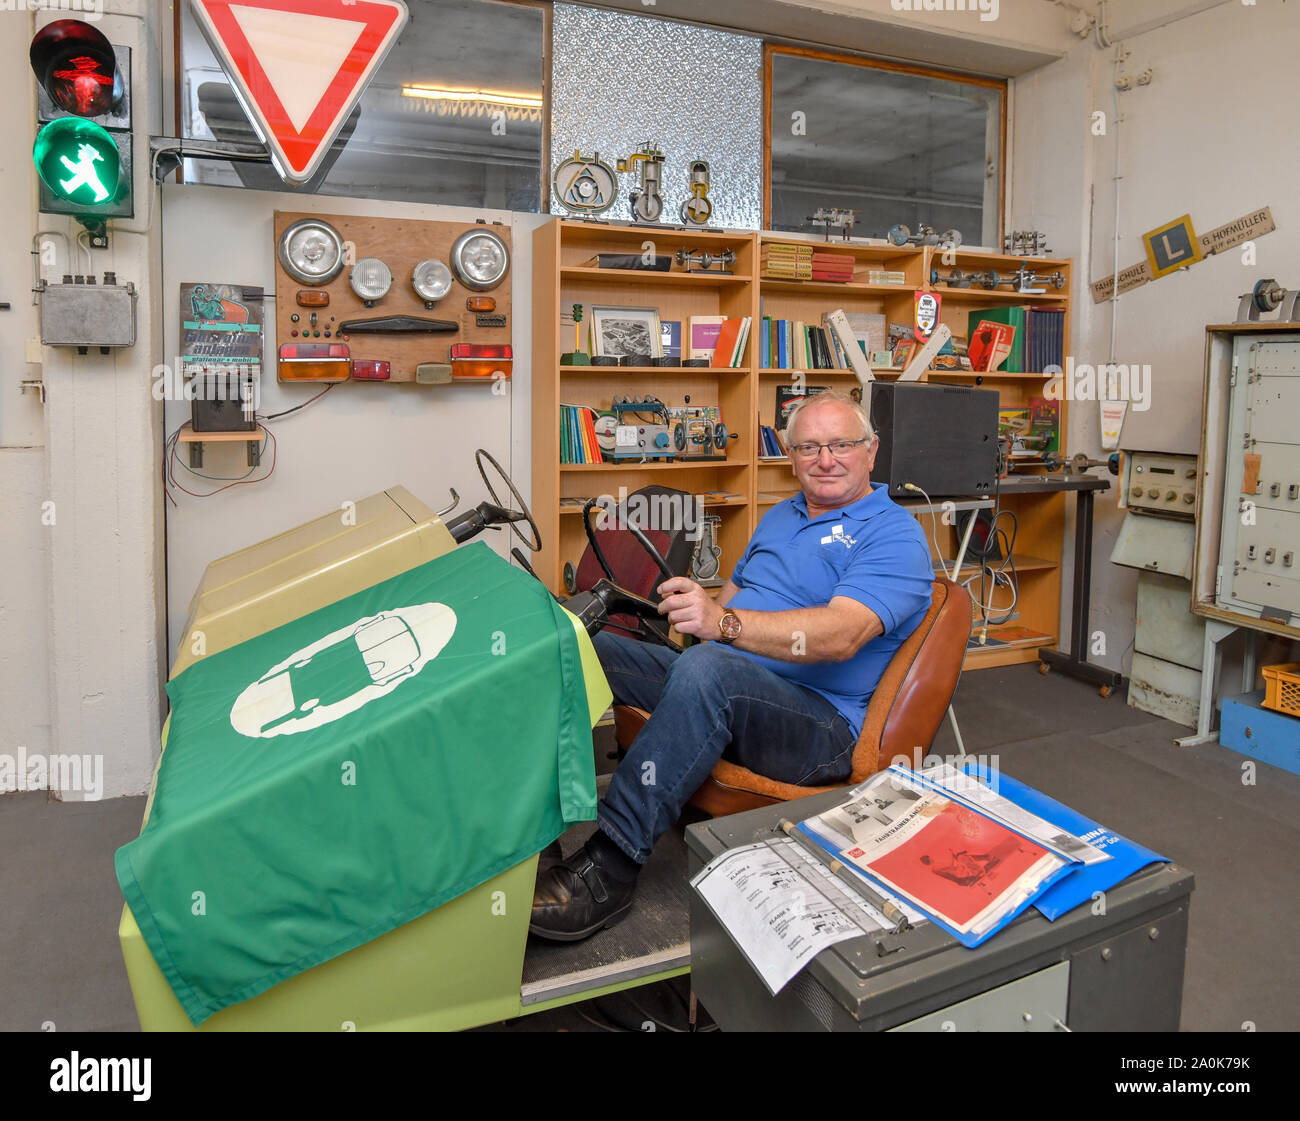 Trebus, Germany. 19th Sep, 2019. Günter Wehr, chairman of the IFA-Freunde Trebus, sits on a driving school simulator in a room full of objects from GDR times. The former German state on a small scale exists in the Brandenburg province. The IFA friends in Trebus will be offering an authentic journey through time into everyday life in the GDR on 14,000 square metres of space. Visitors indulge in memories during guided tours. Credit: Patrick Pleul/dpa-Zentralbild/ZB/dpa/Alamy Live News Stock Photo